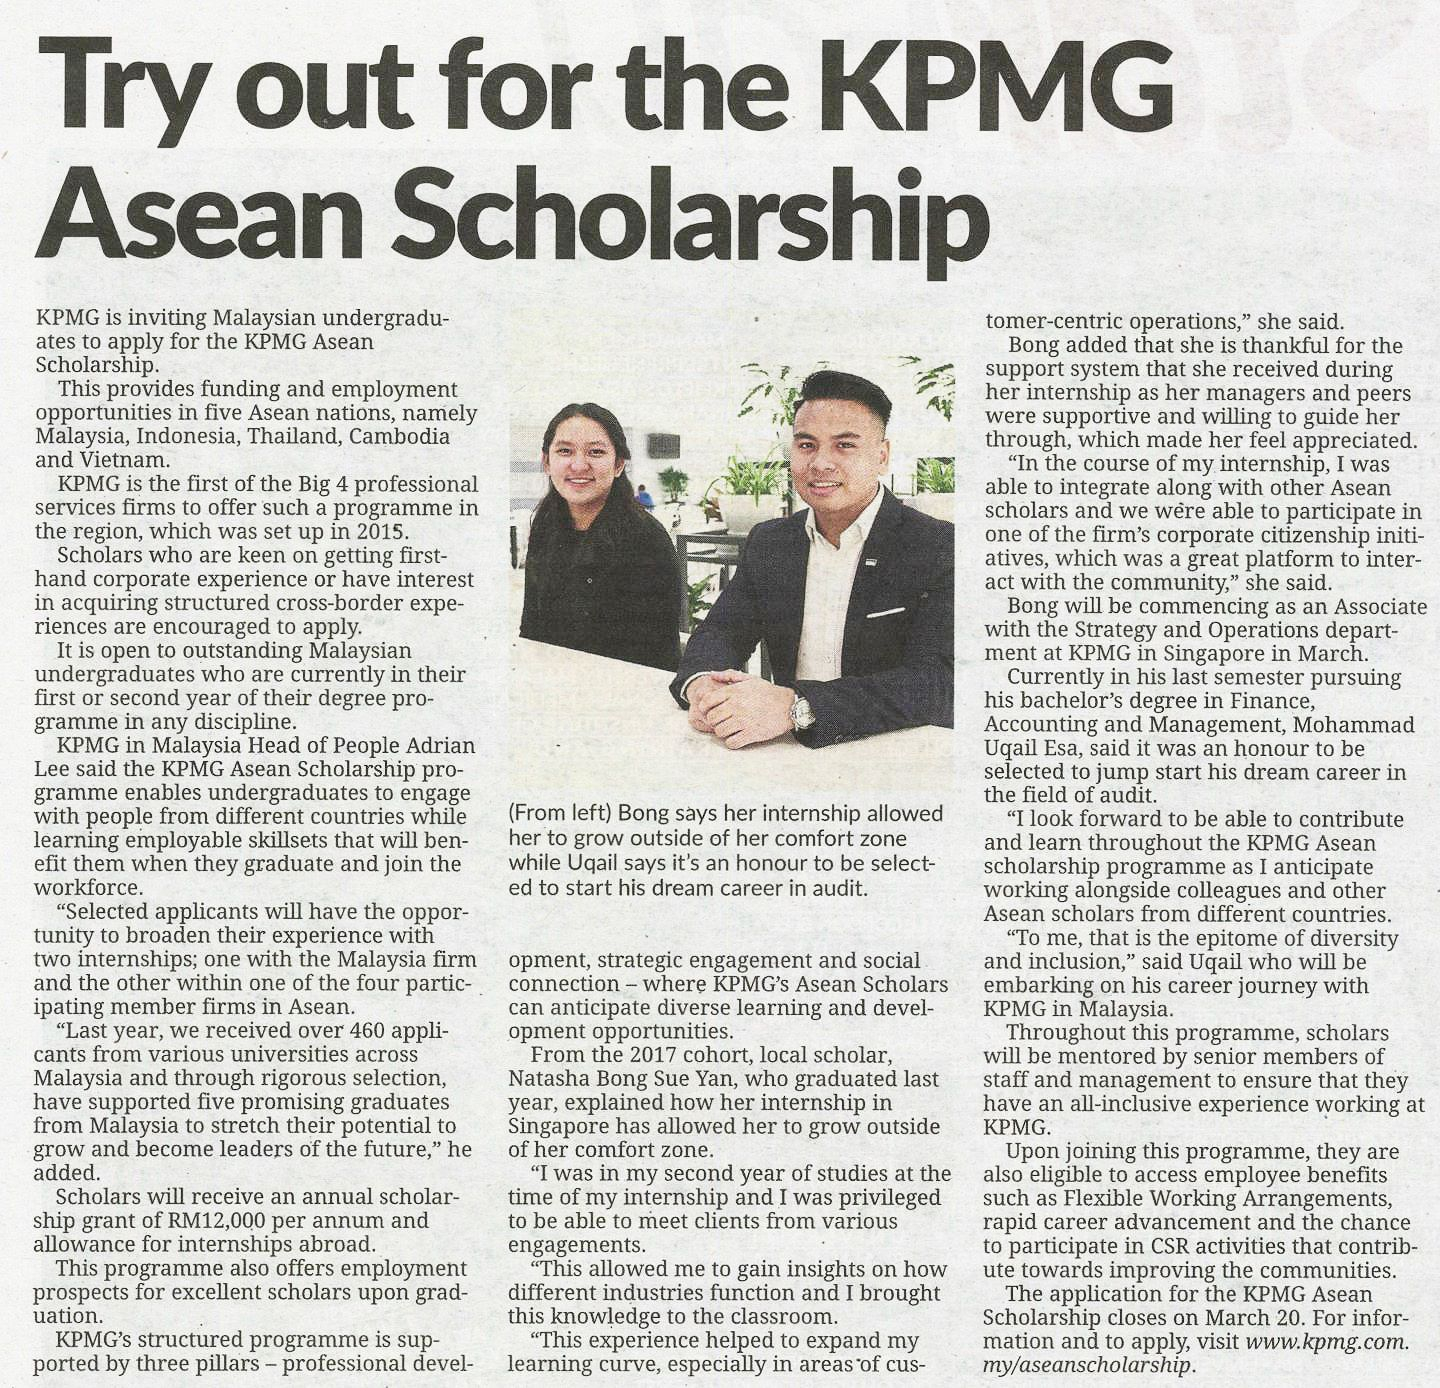 Try out for the KPMG Asean Scholarship